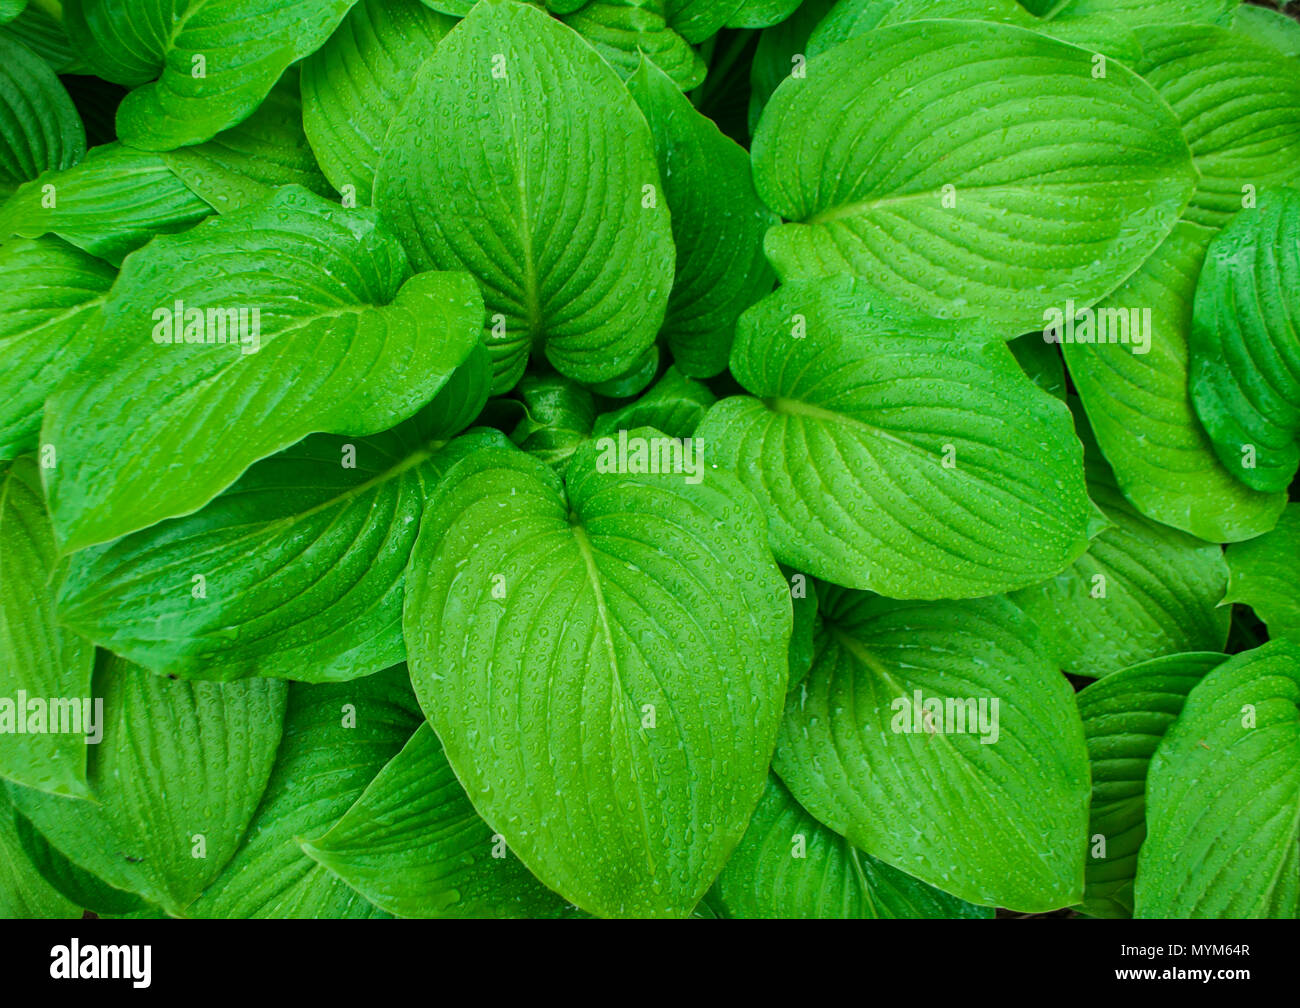 Beautiful bright green tropical leaves with rain drops. Textured floral background. Stock Photo